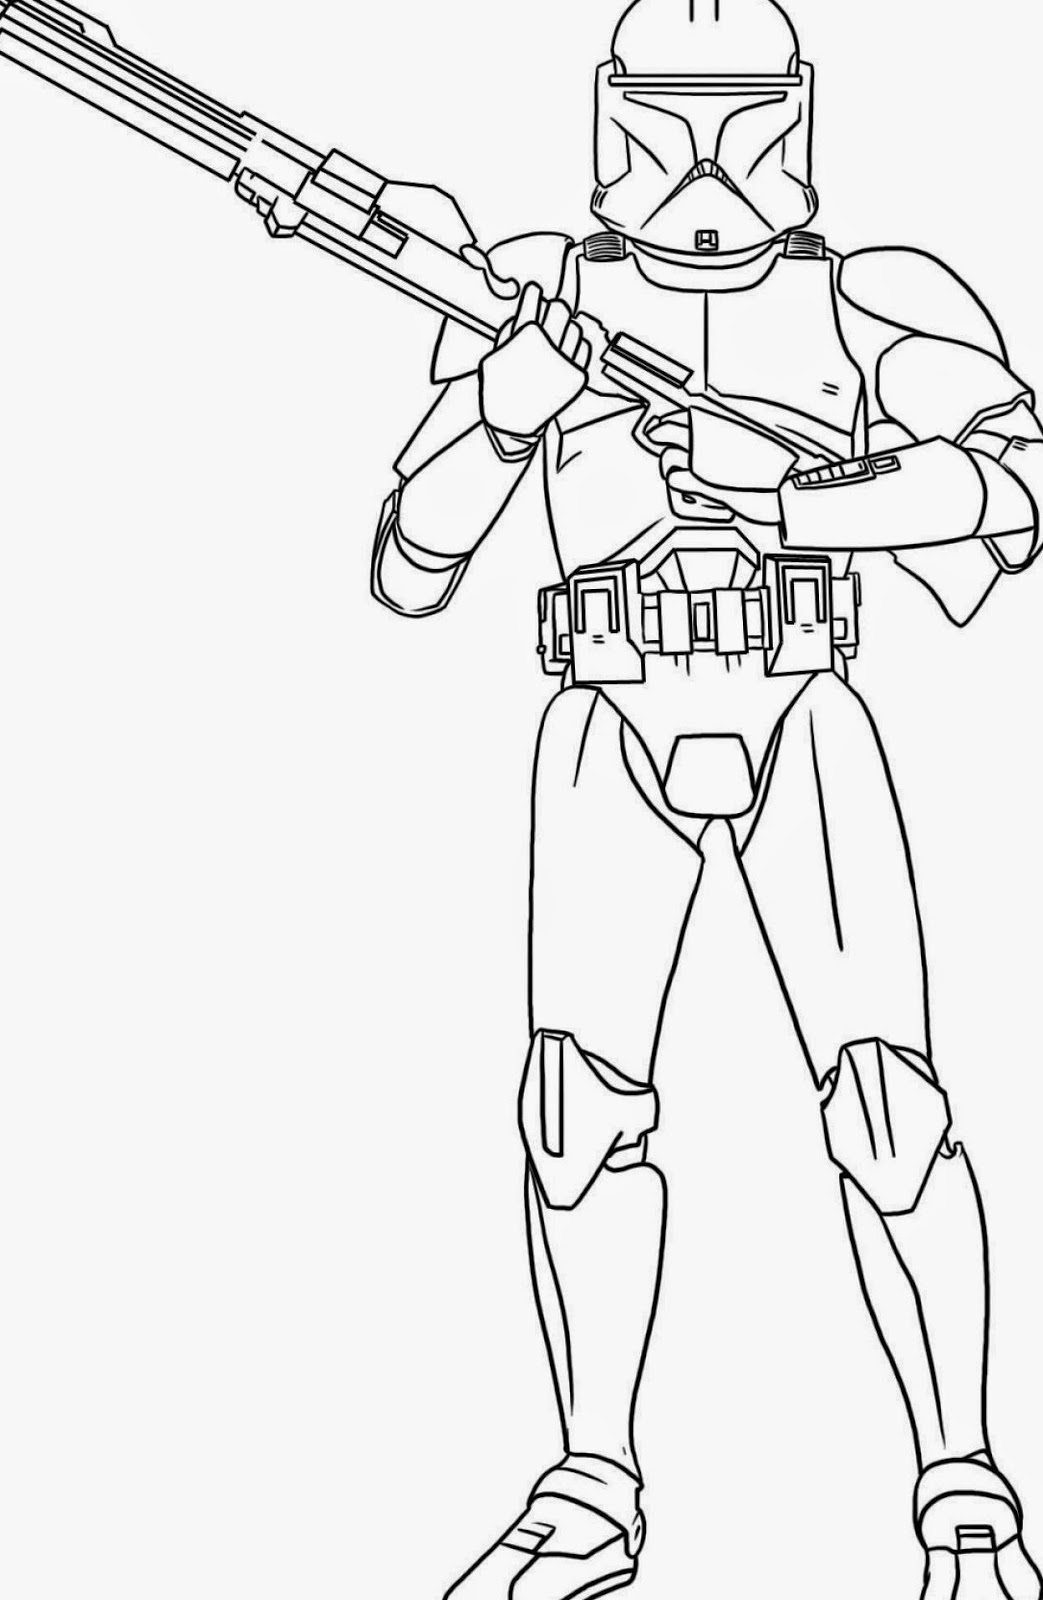 free star wars character coloring pages | Coloring Pages: Star Wars Free Printable Coloring Pages